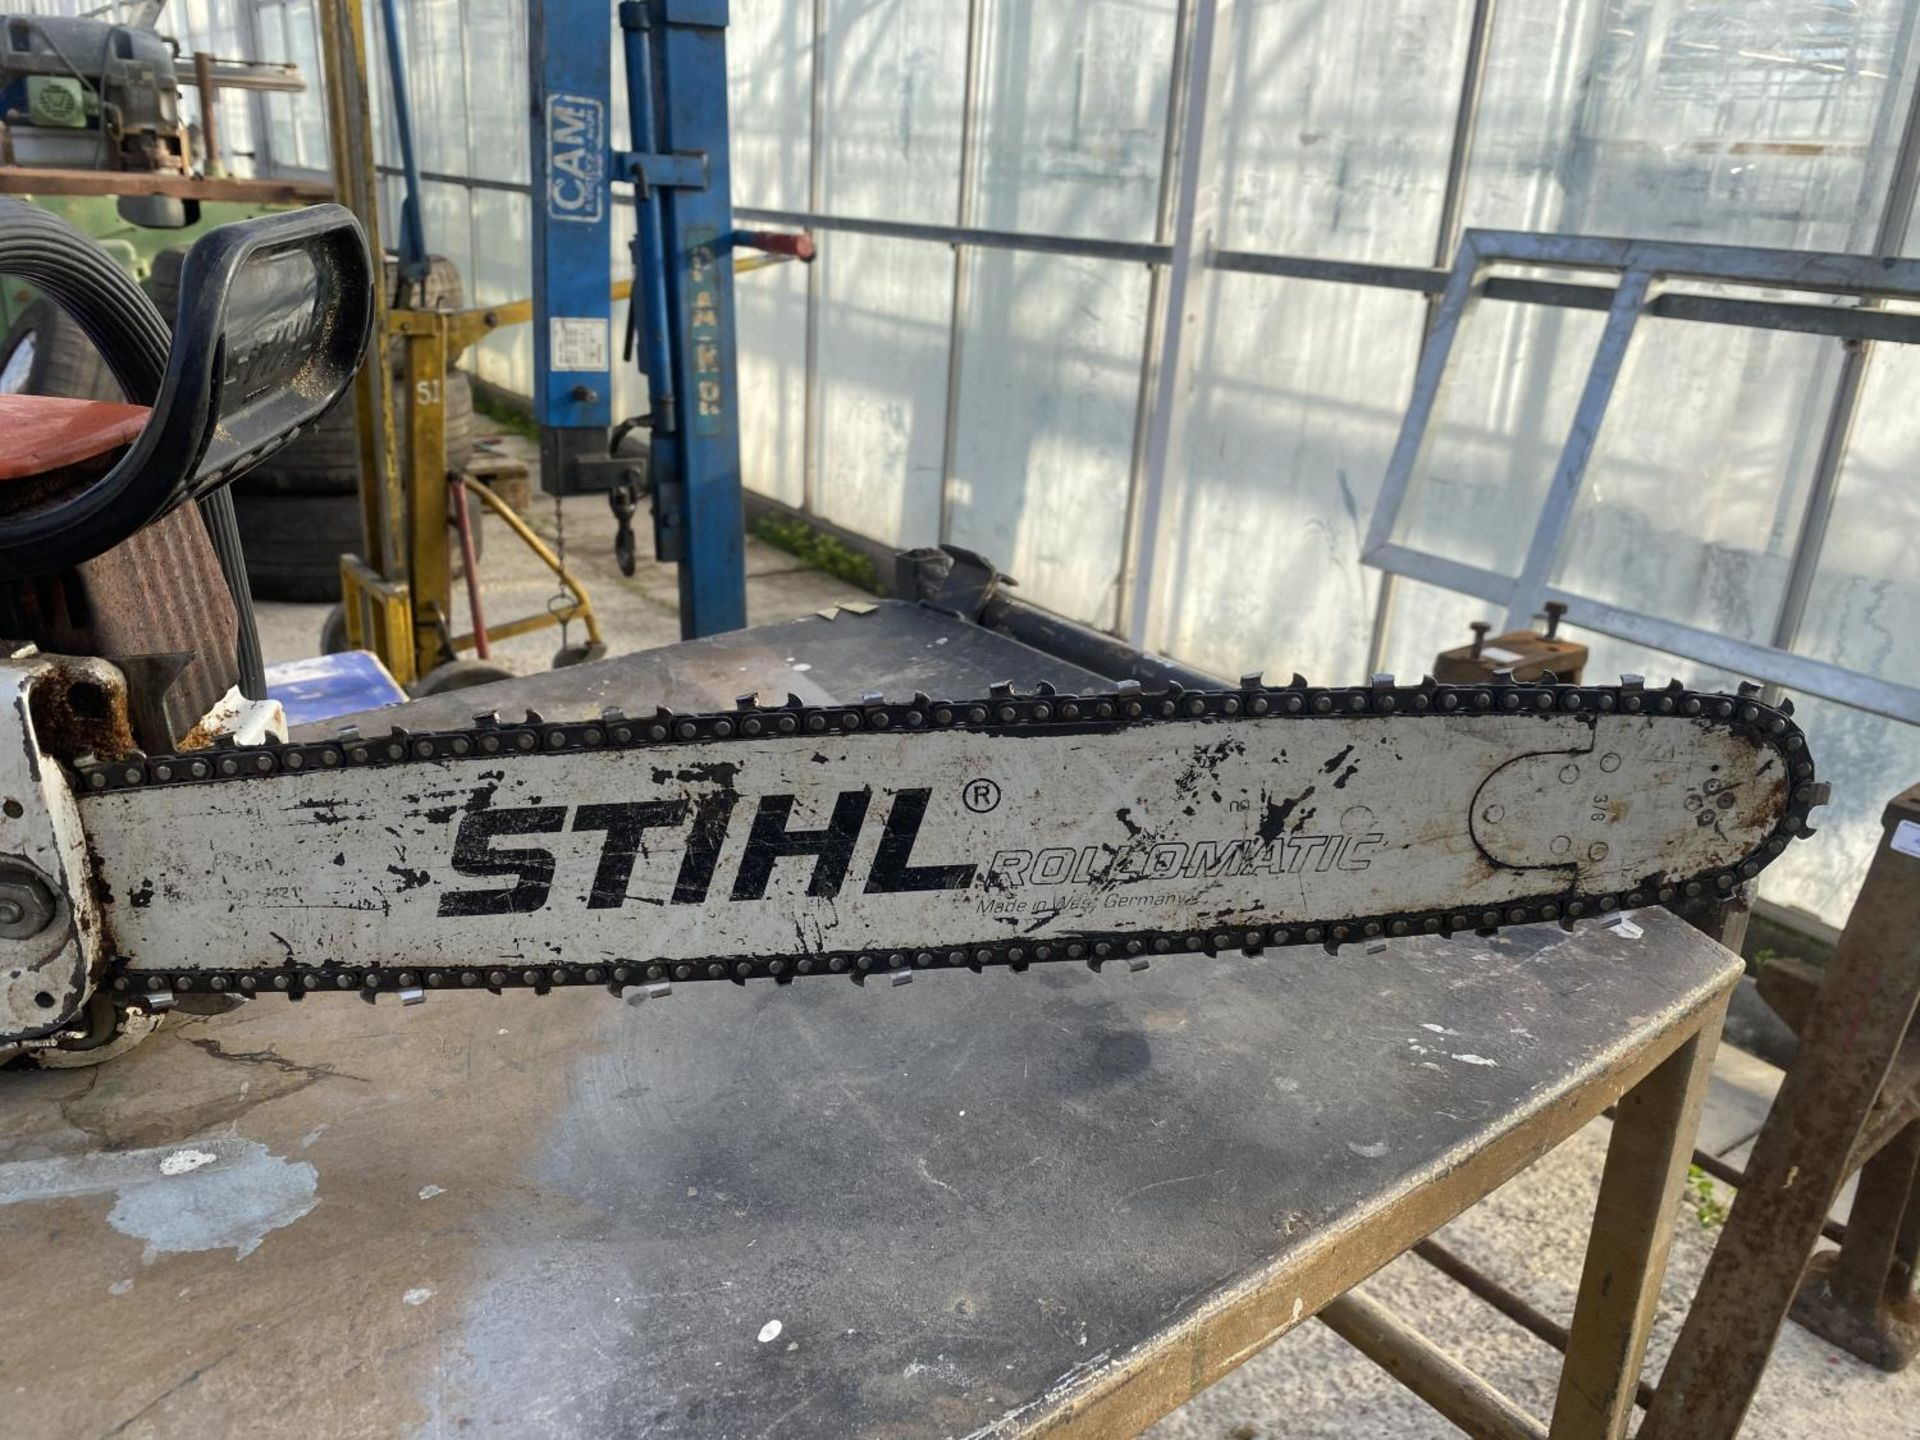 A STHIL 038 AV ELECTRONIC QUICKSTOP CHAIN SAW NO VAT - Image 2 of 5